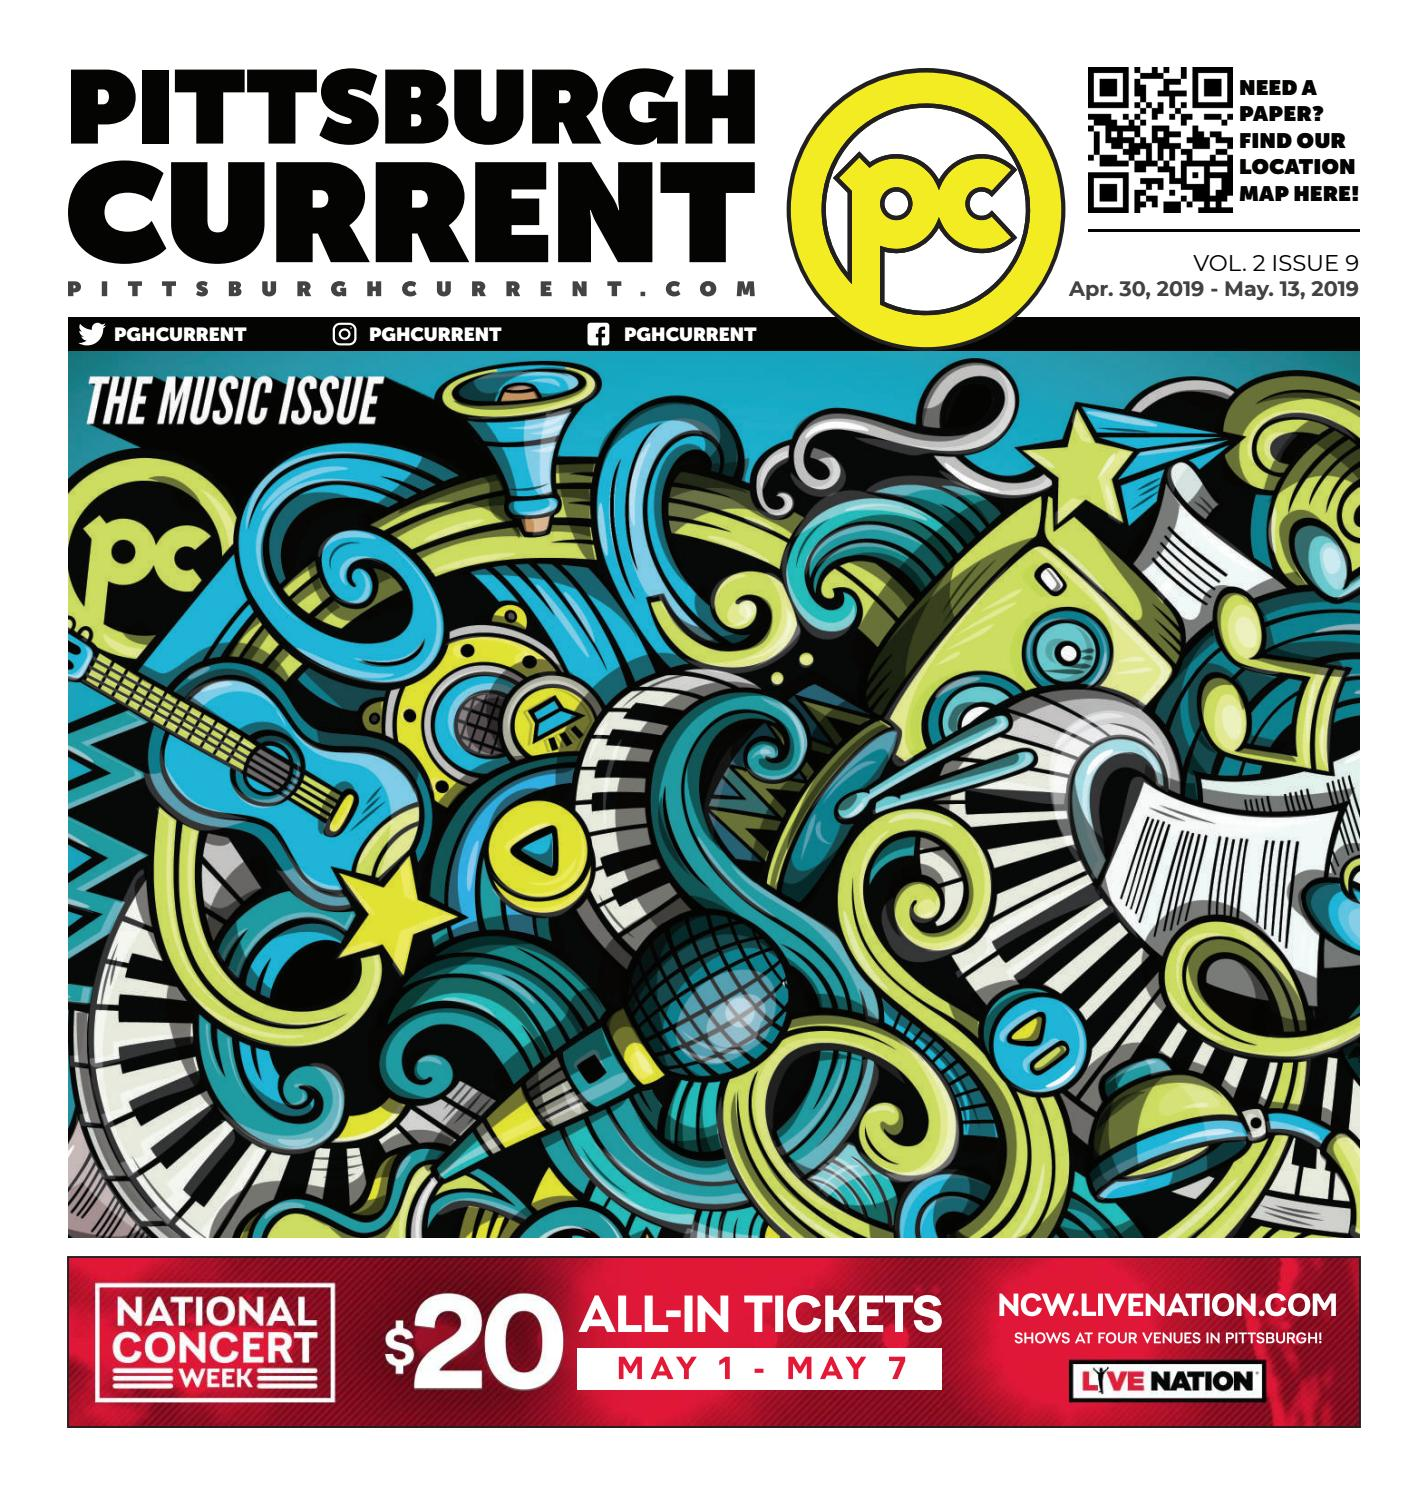 d095be2ad7 Pittsburgh Current, Vol 2., Issue 7 by pittsburghcurrent - issuu